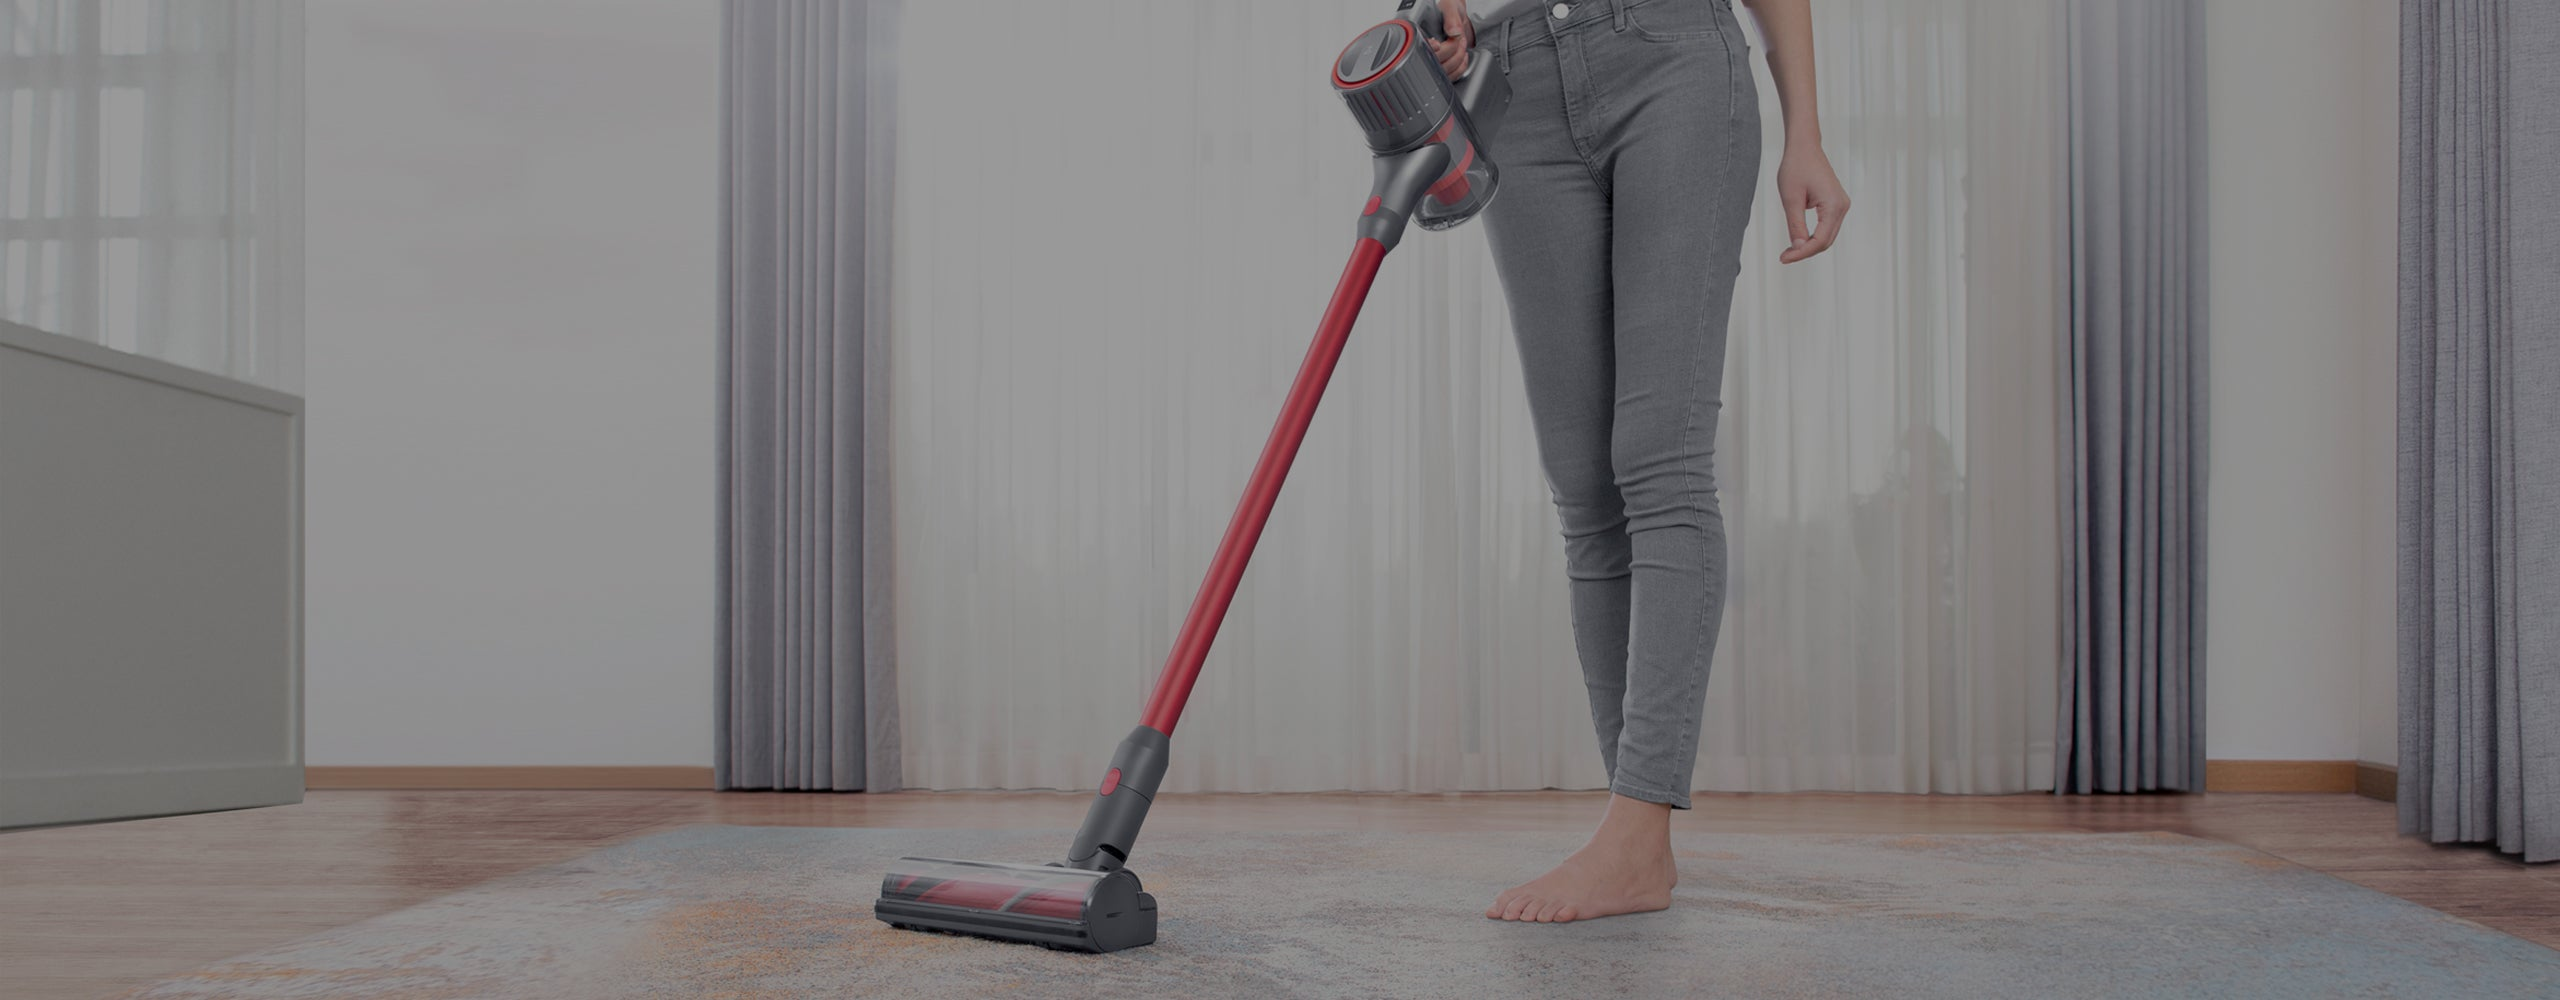 Roborock H6 - Built for Deeper Longer Cleaning